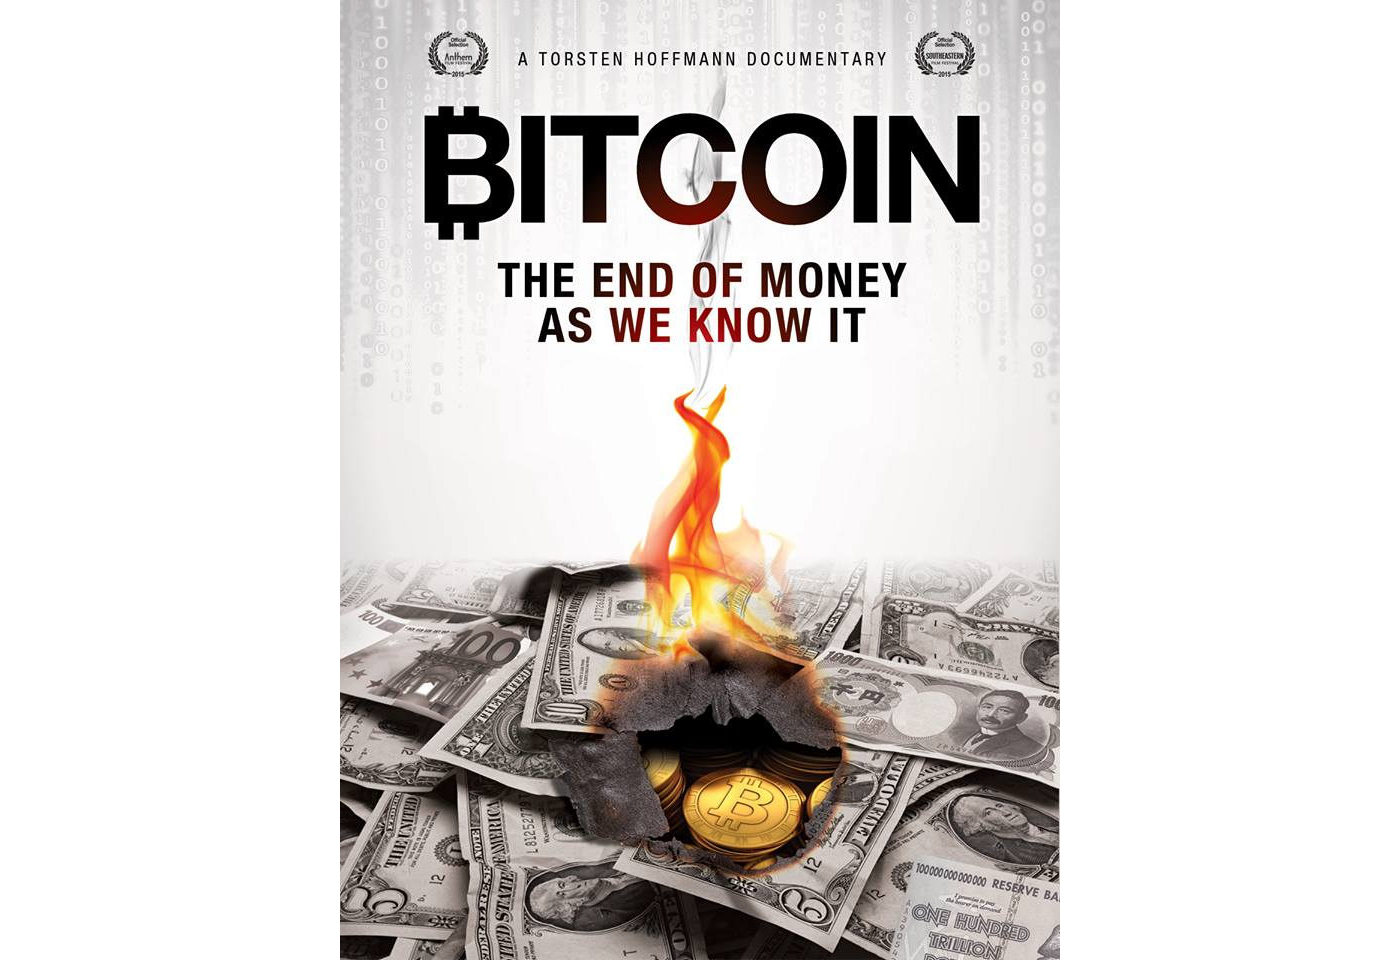 Bitocin The End Of Money As We Know It